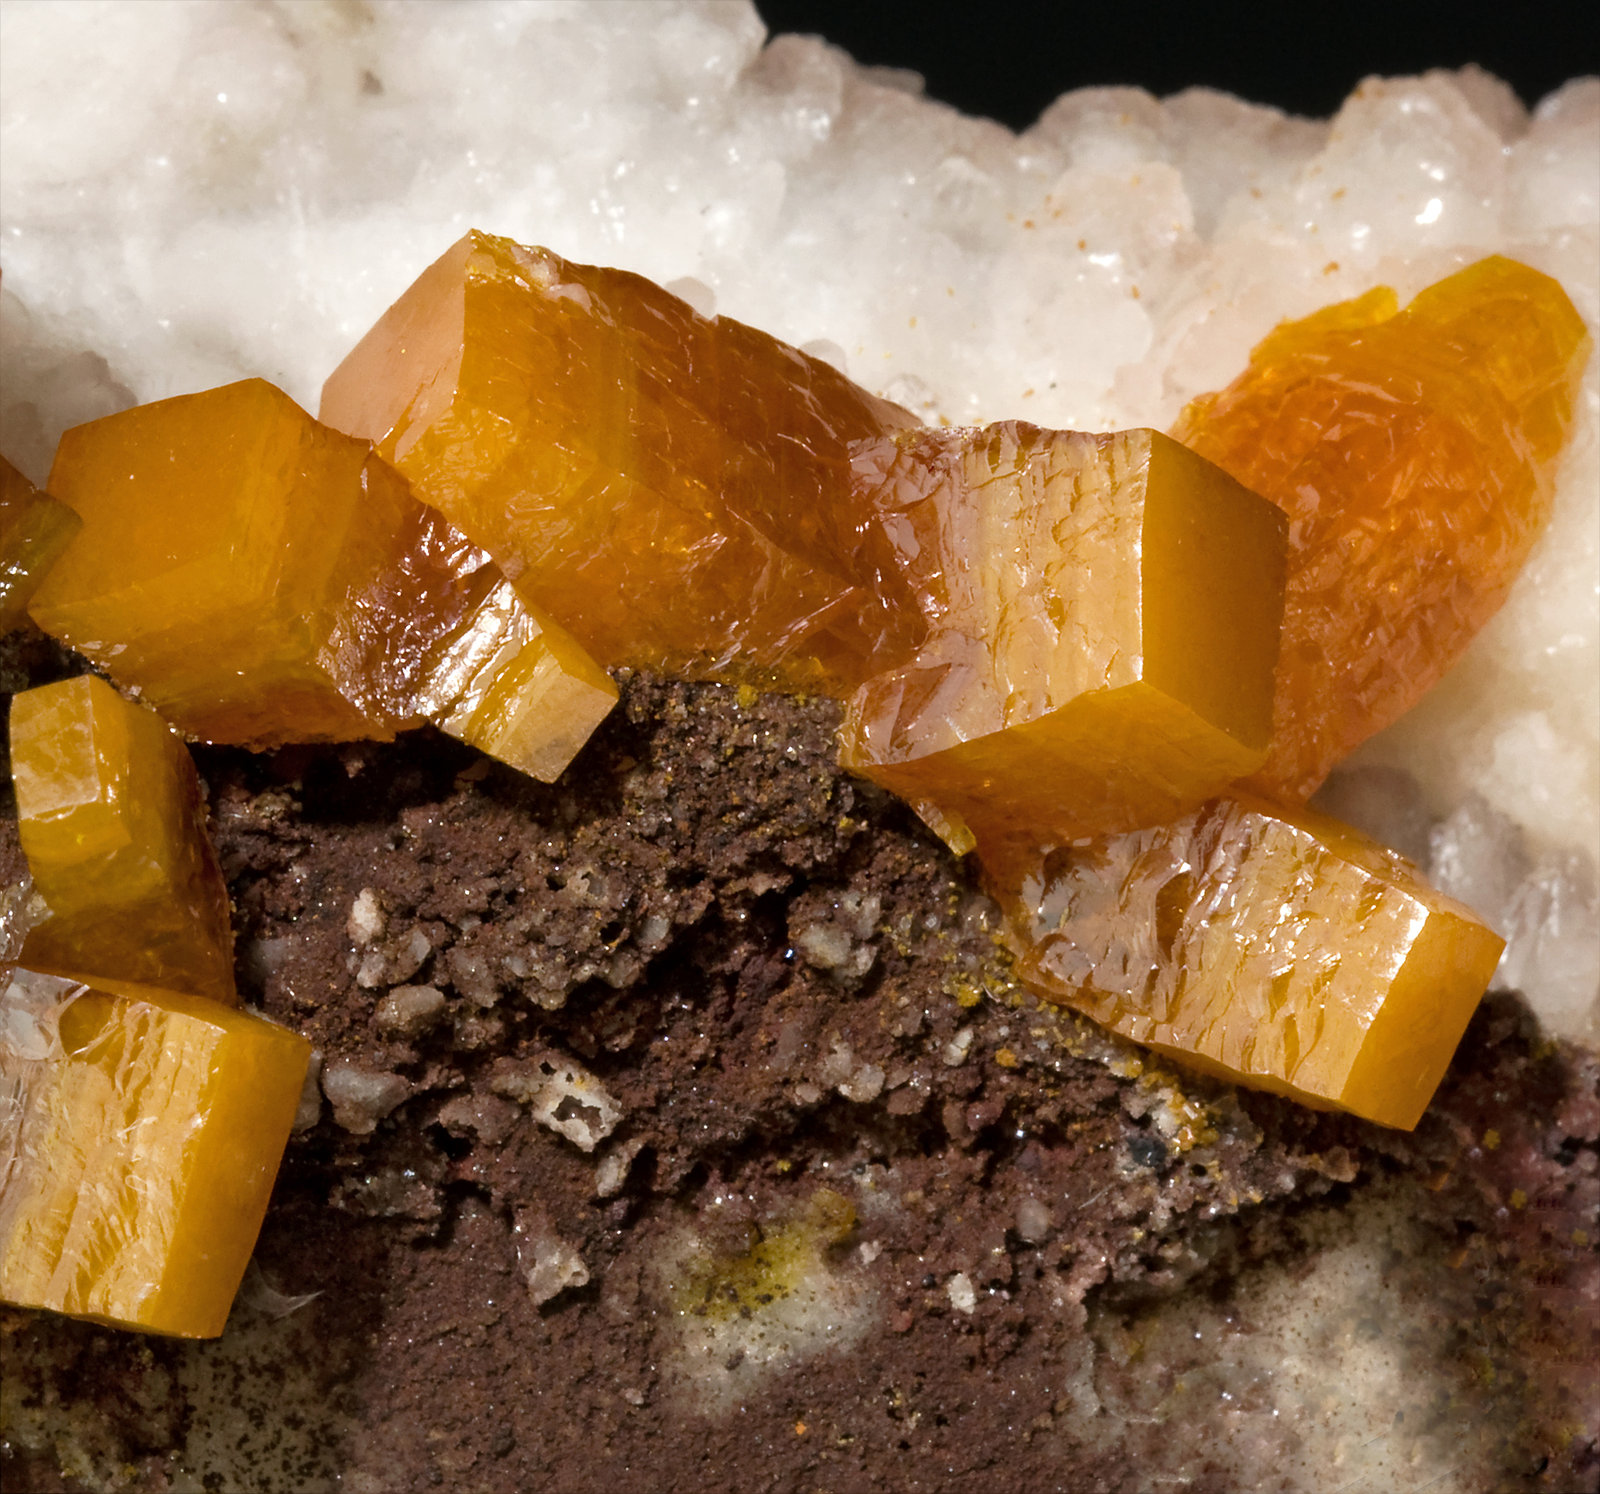 specimens/s_imagesS7/Wulfenite-RQ86S7d.jpg